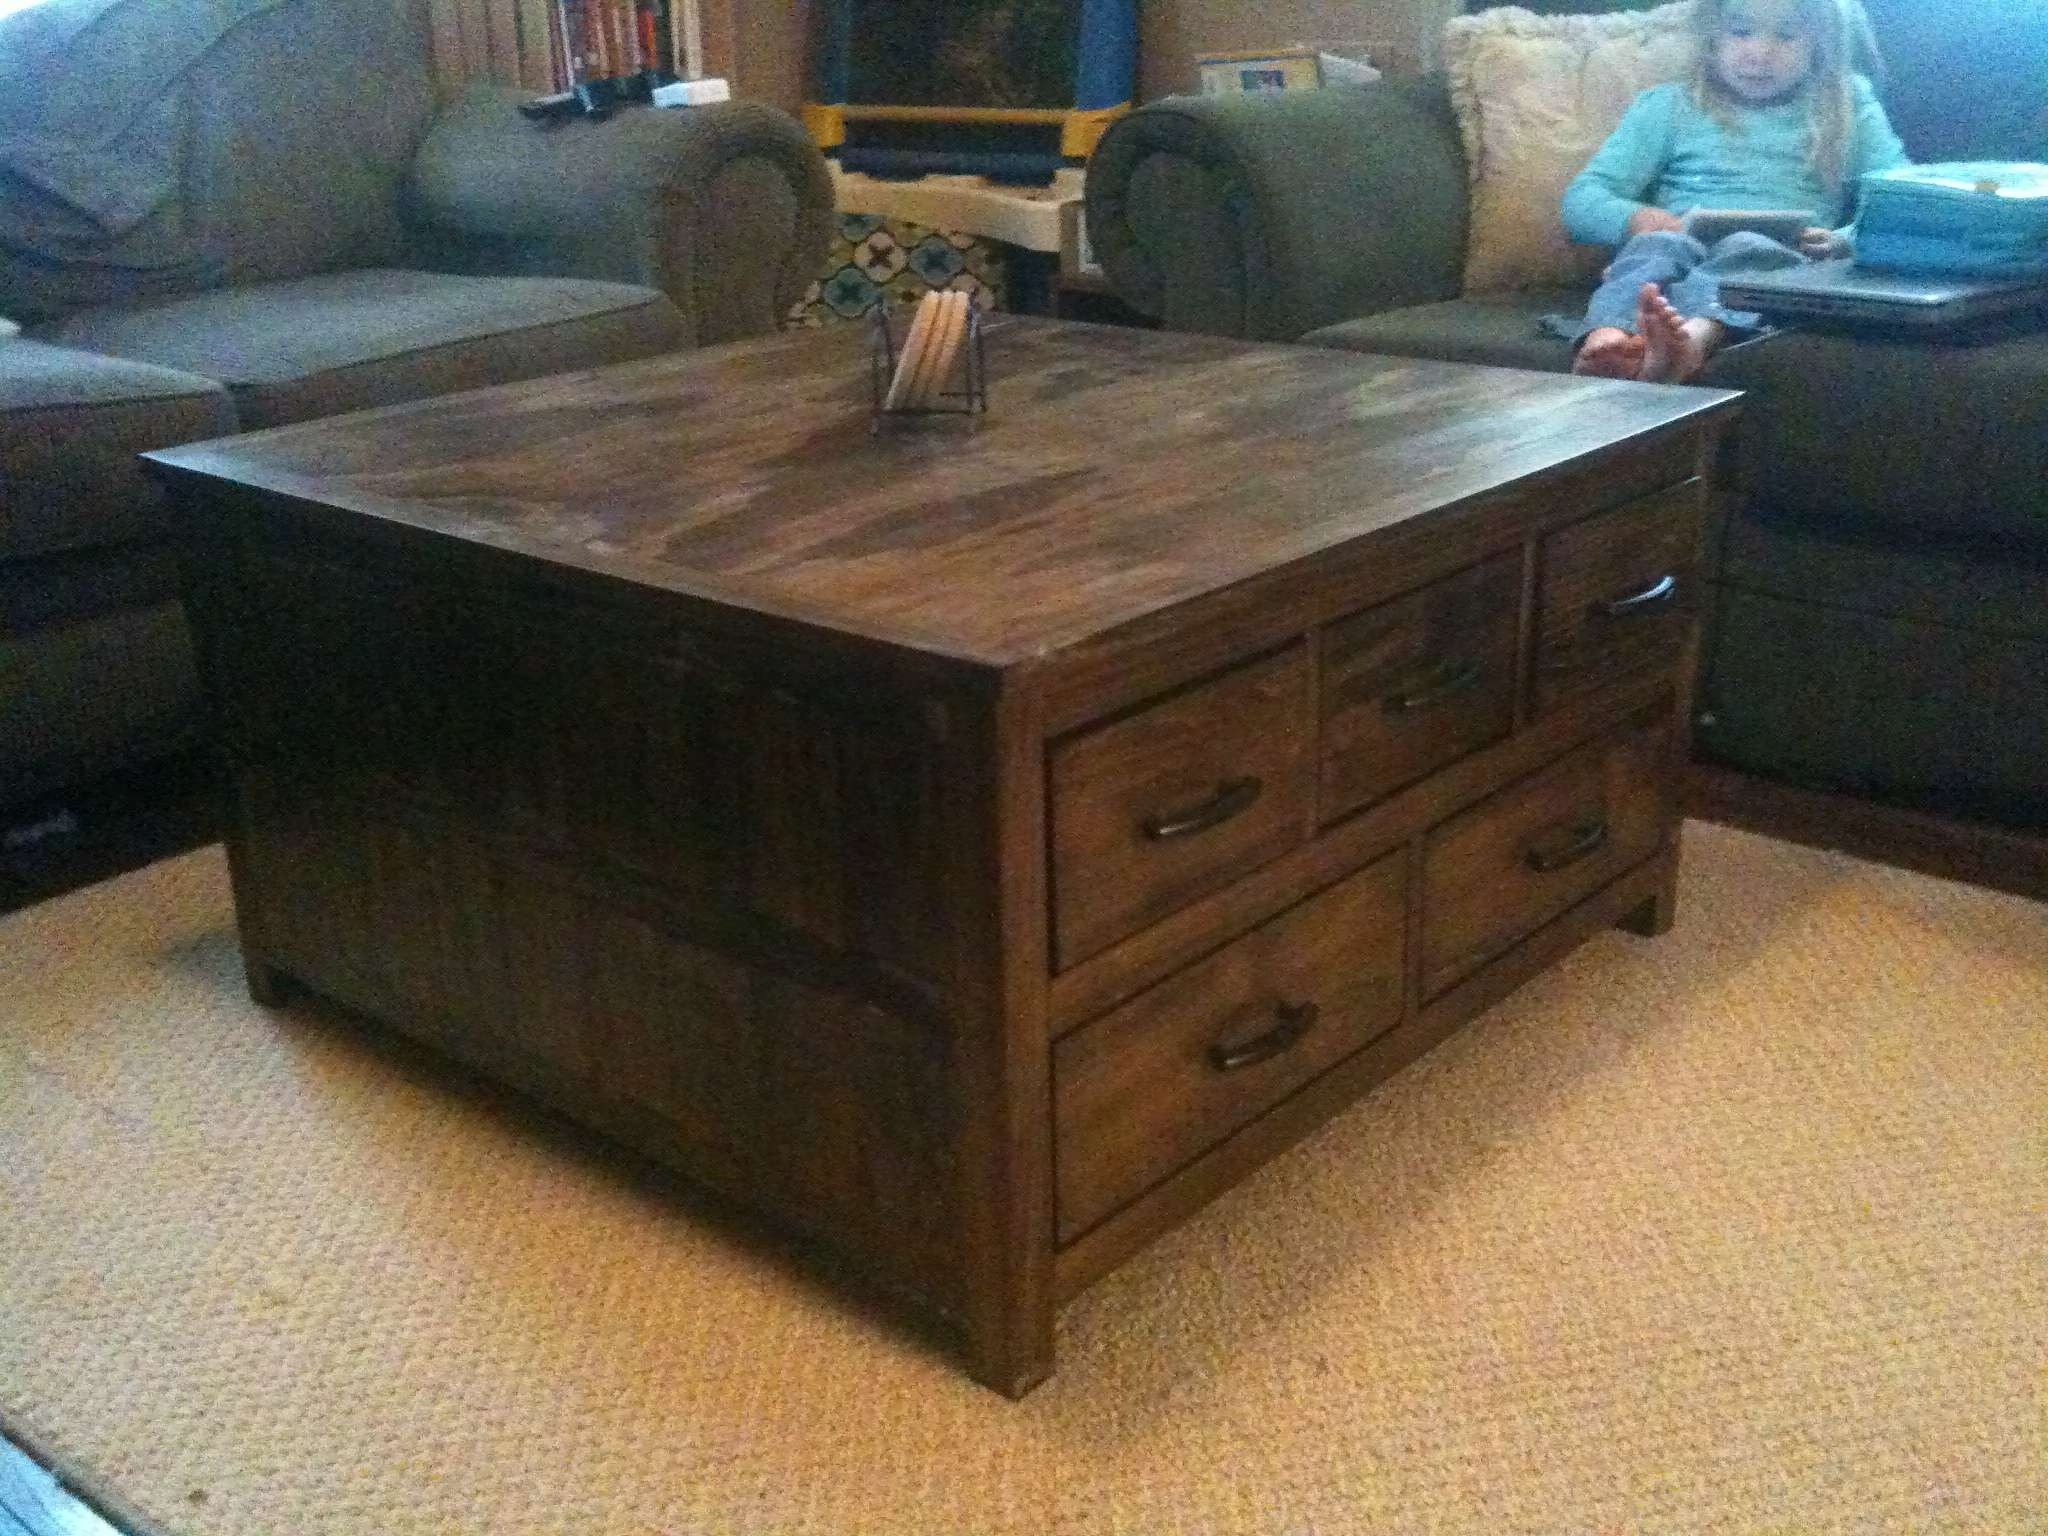 Preferred Hardwood Coffee Tables With Storage Intended For Coffee Table : Marvelous Wood And Metal Coffee Table Rustic Round (View 16 of 20)